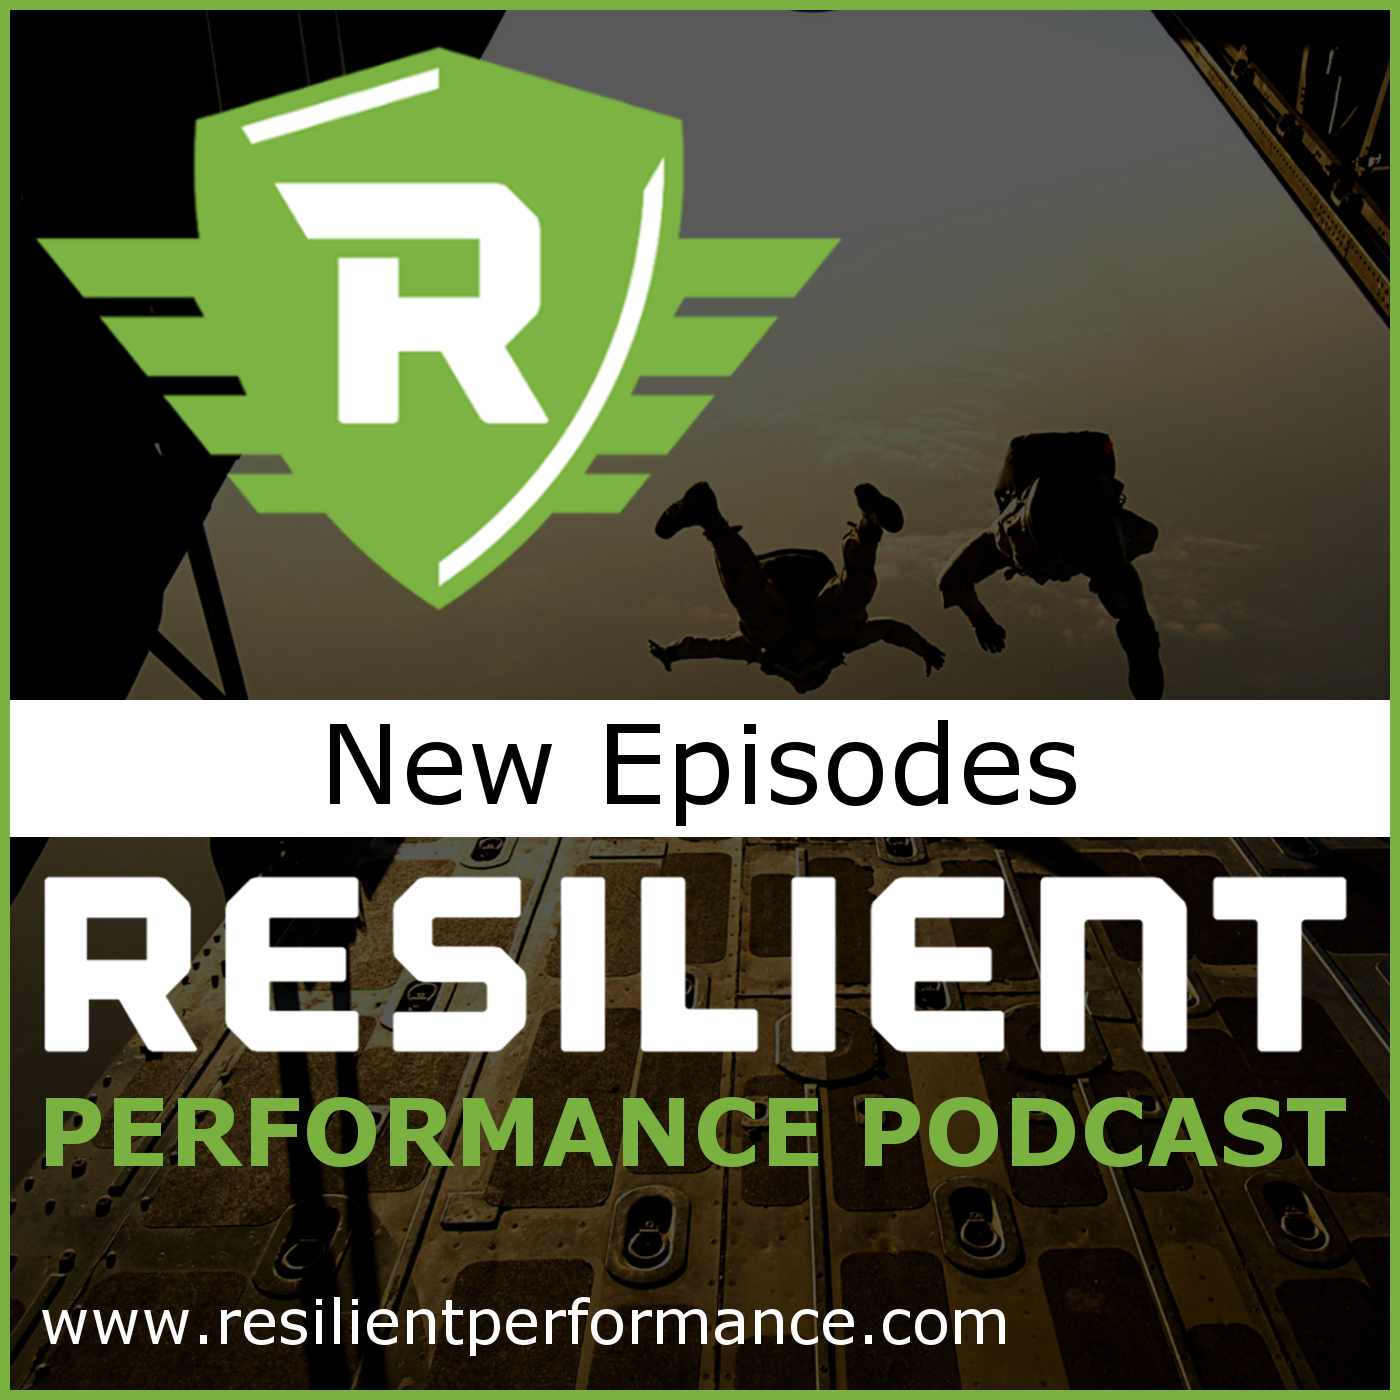 Resilient Performance Podcast show art